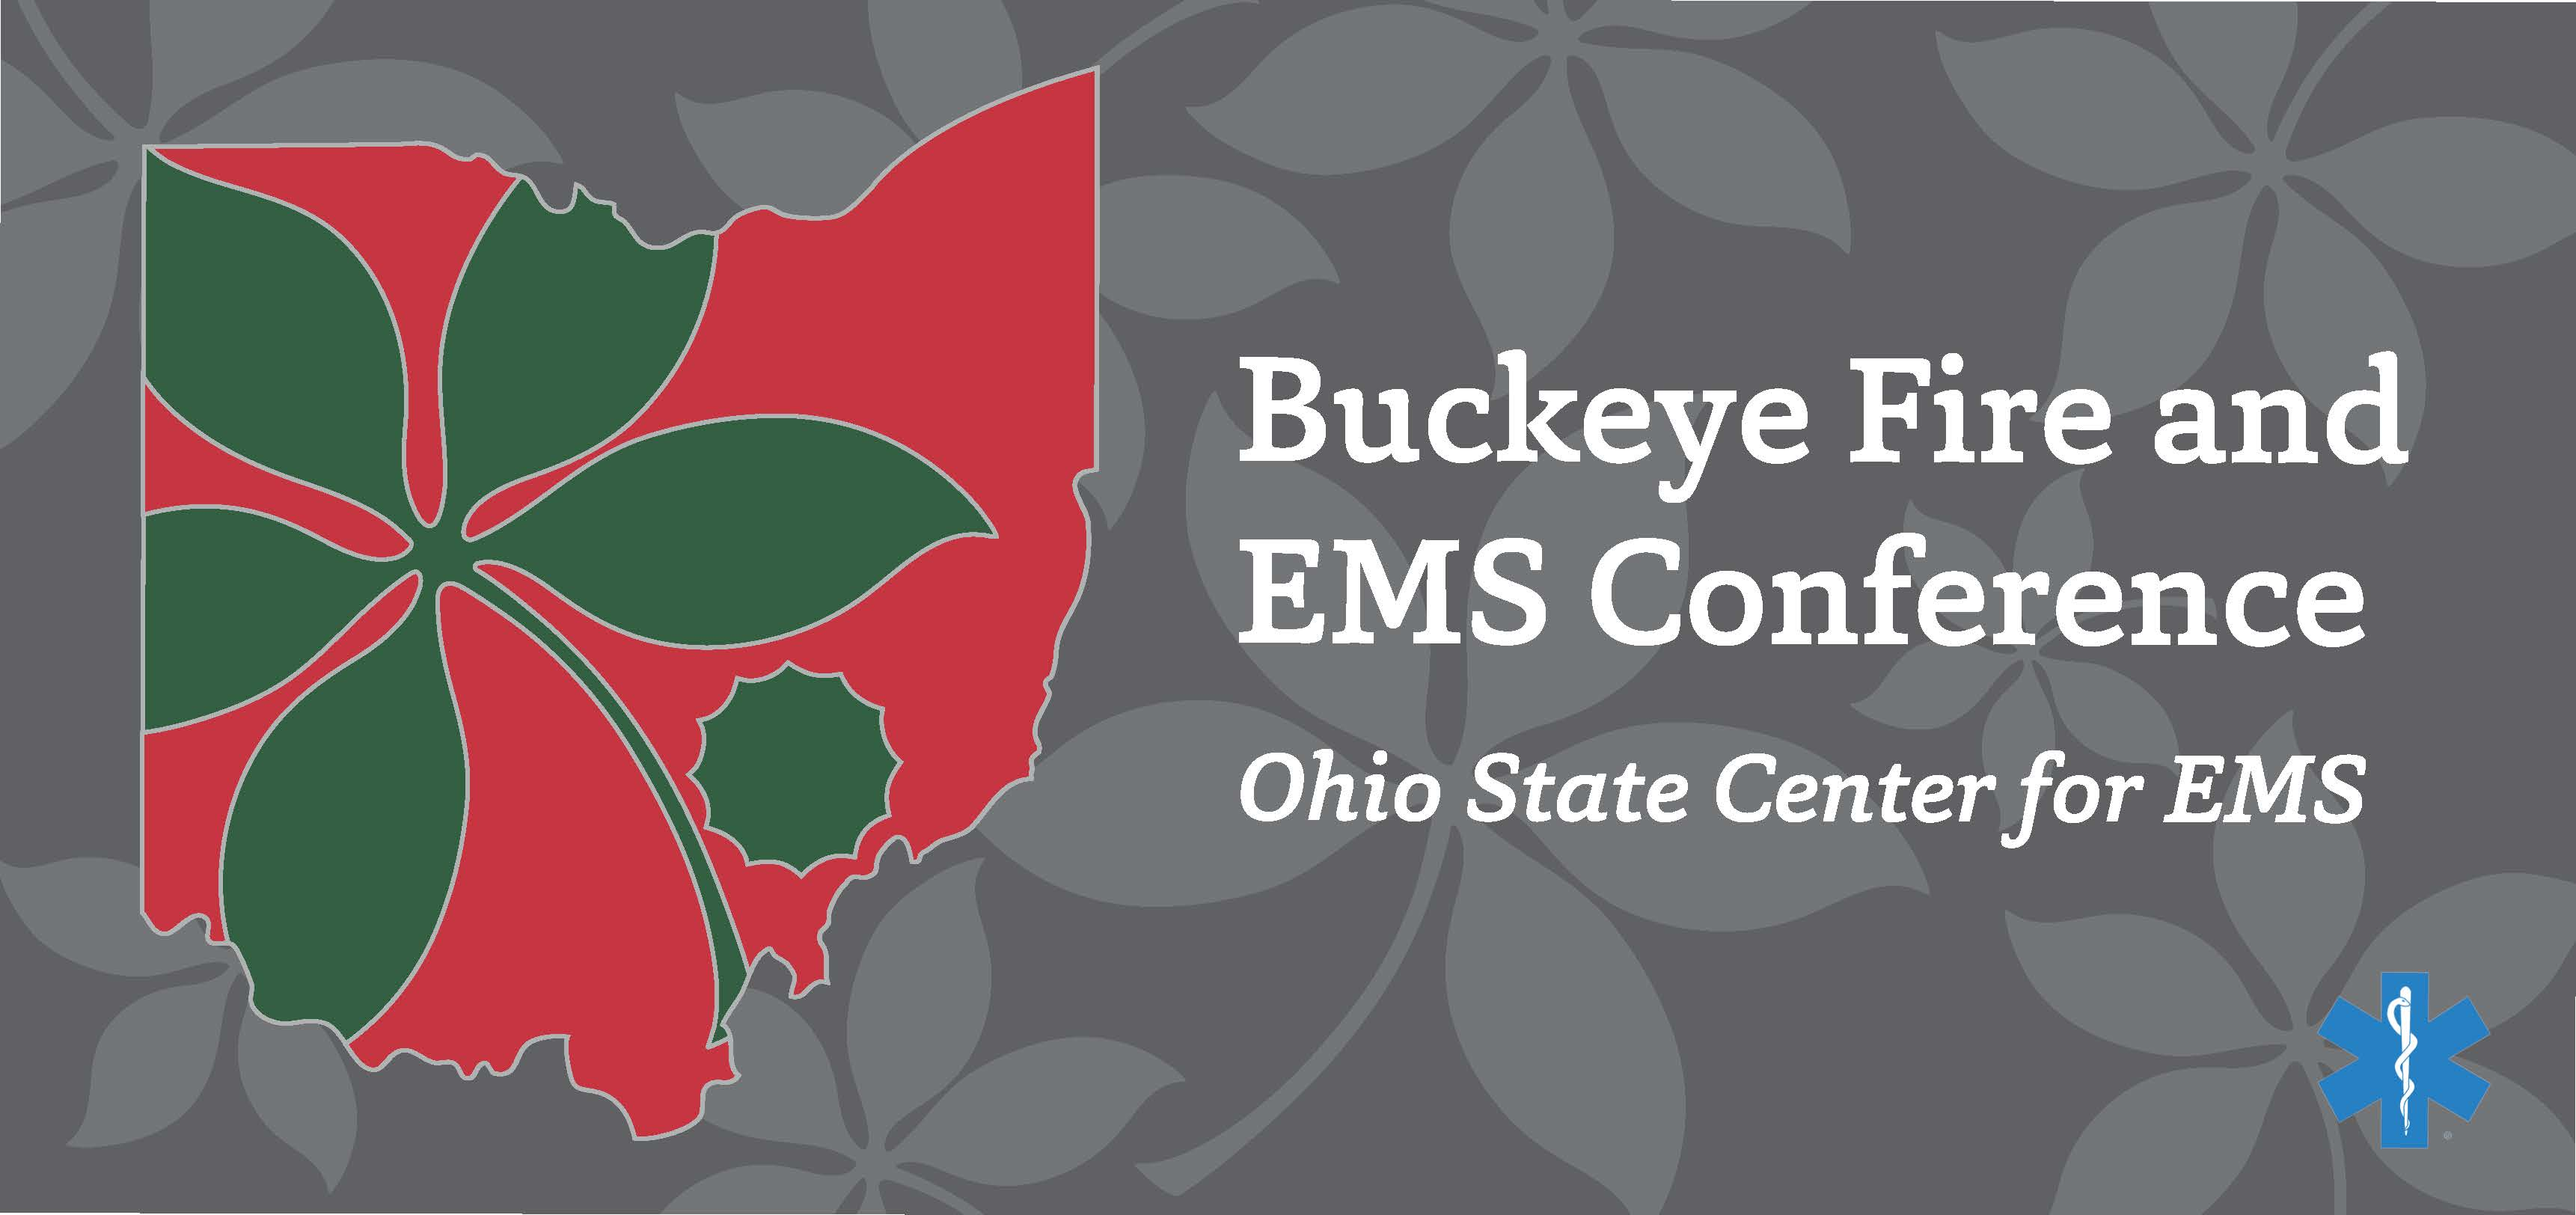 The Buckeye Fire and EMS Conference